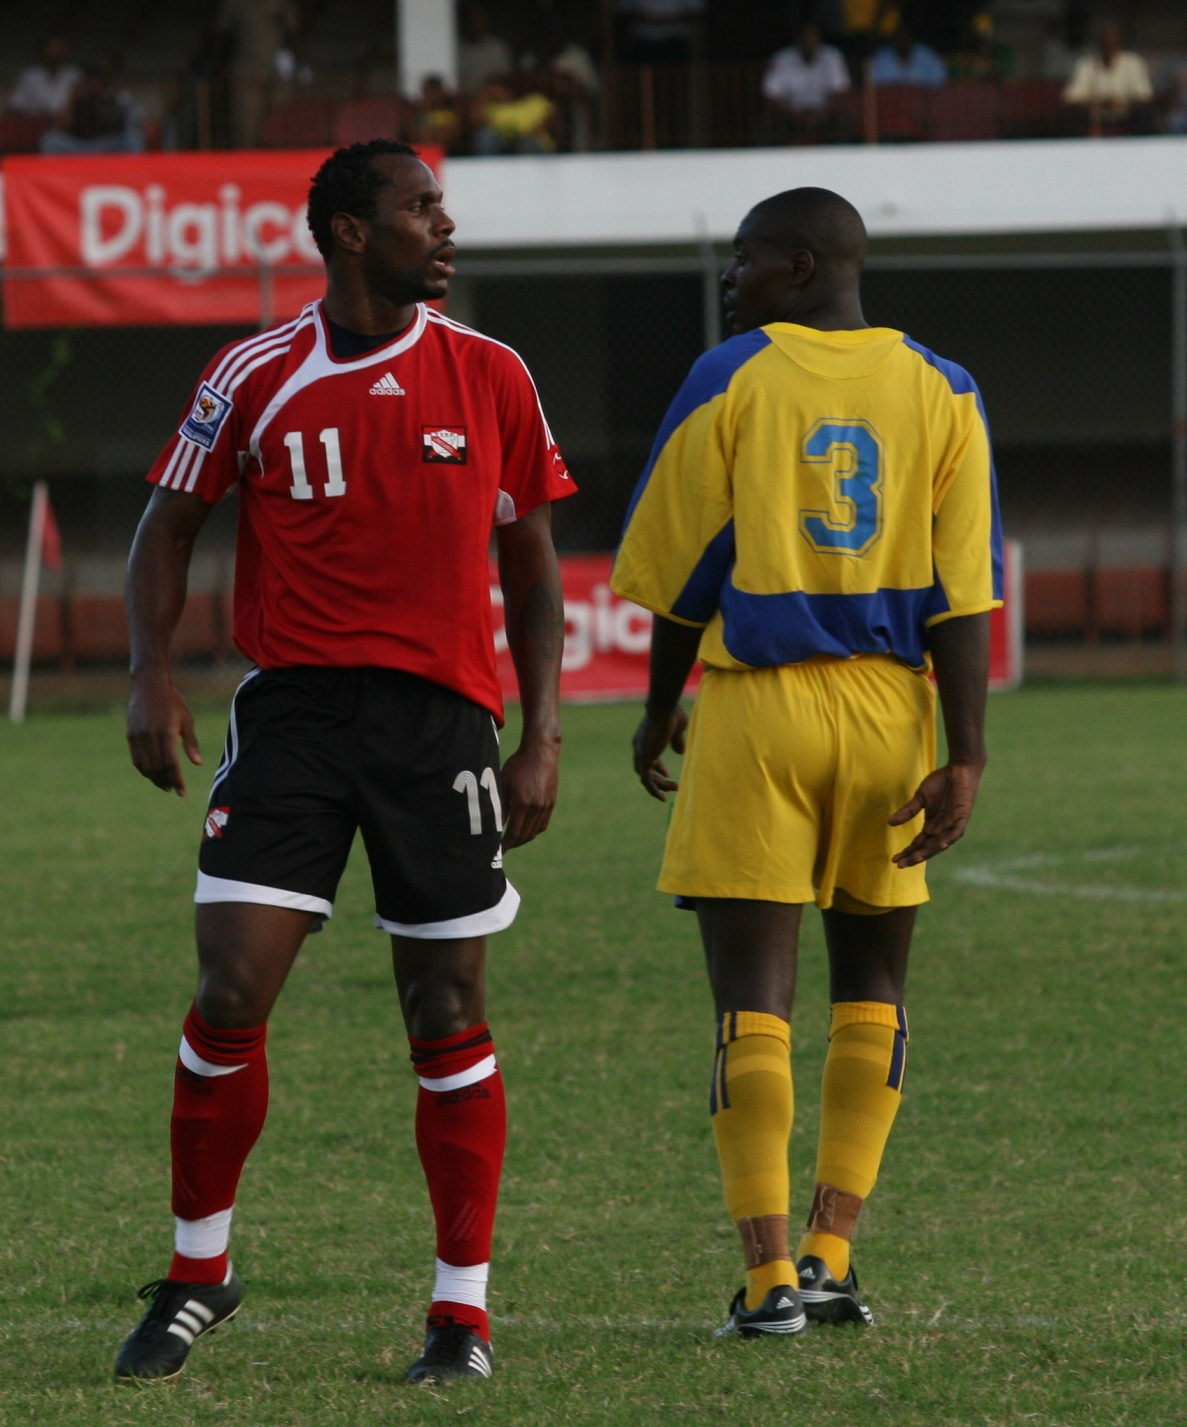 #11 Errol McFarlane saves the day for T&T.